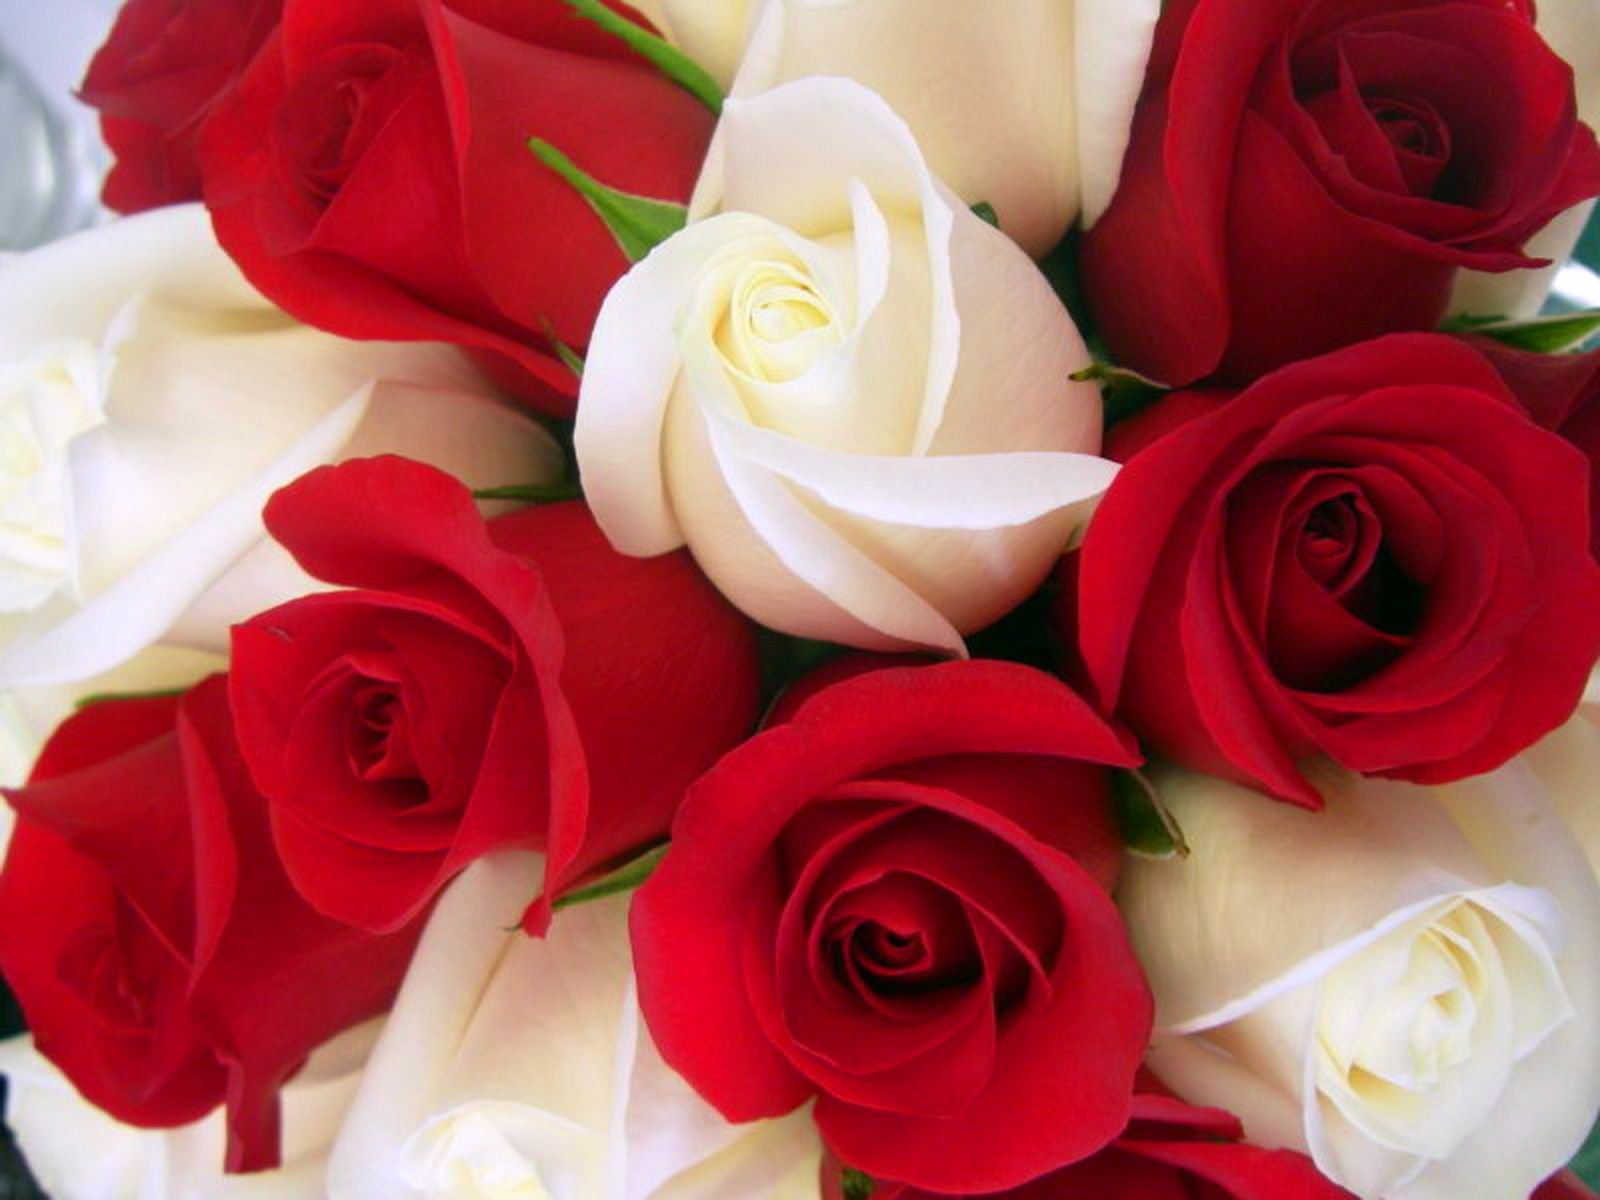 Wallpaper rose wallpapers for free download about